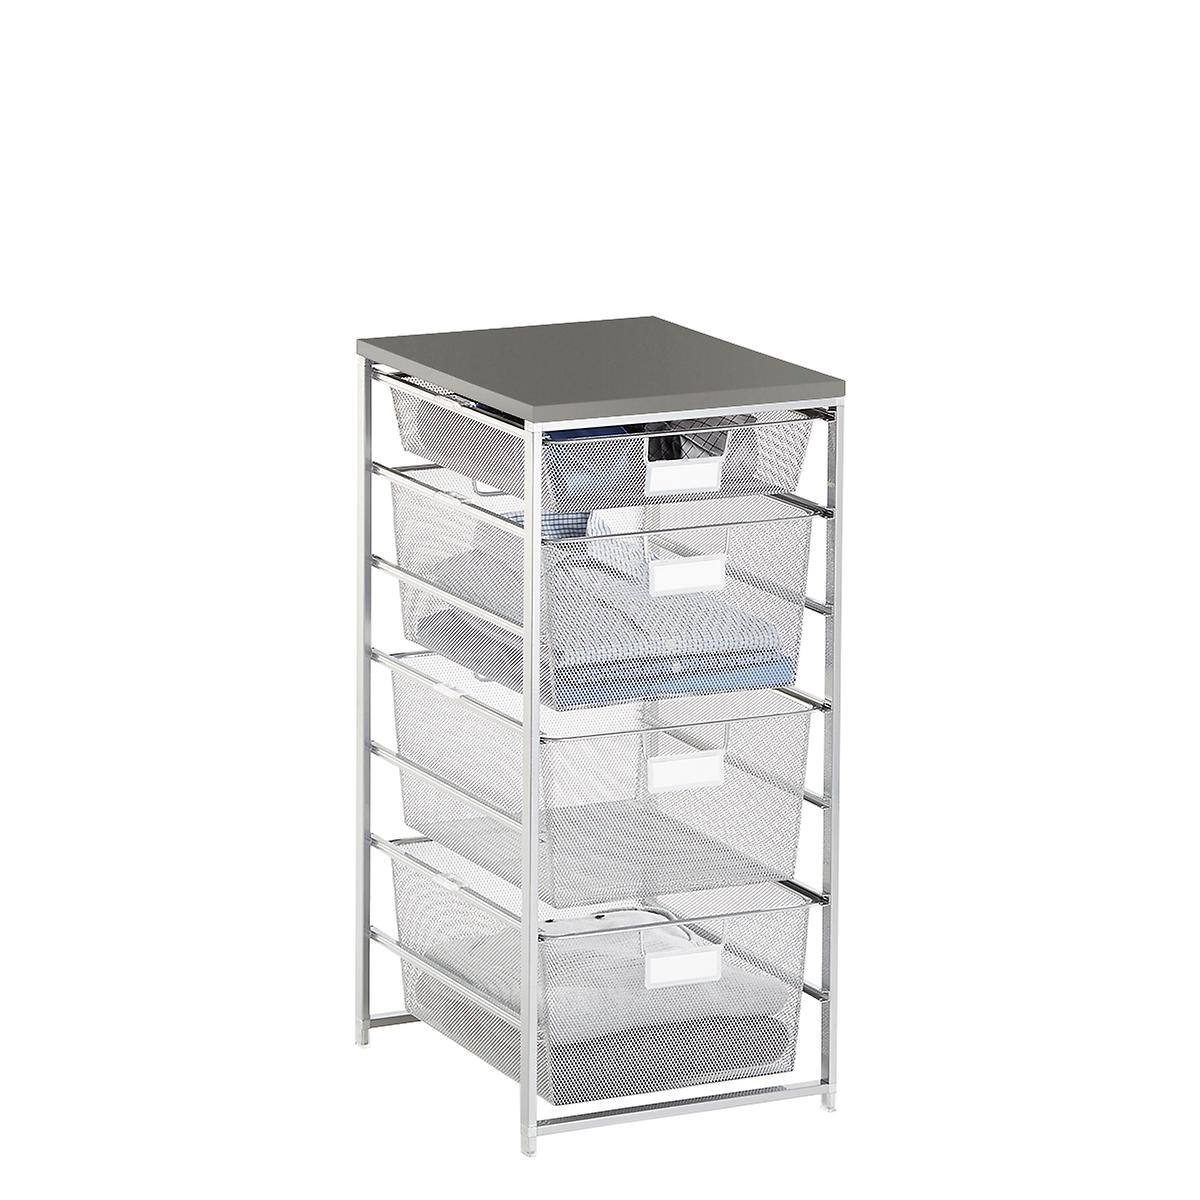 Elfa Platinum & Grey Cabinet-Sized Mesh Closet Drawers